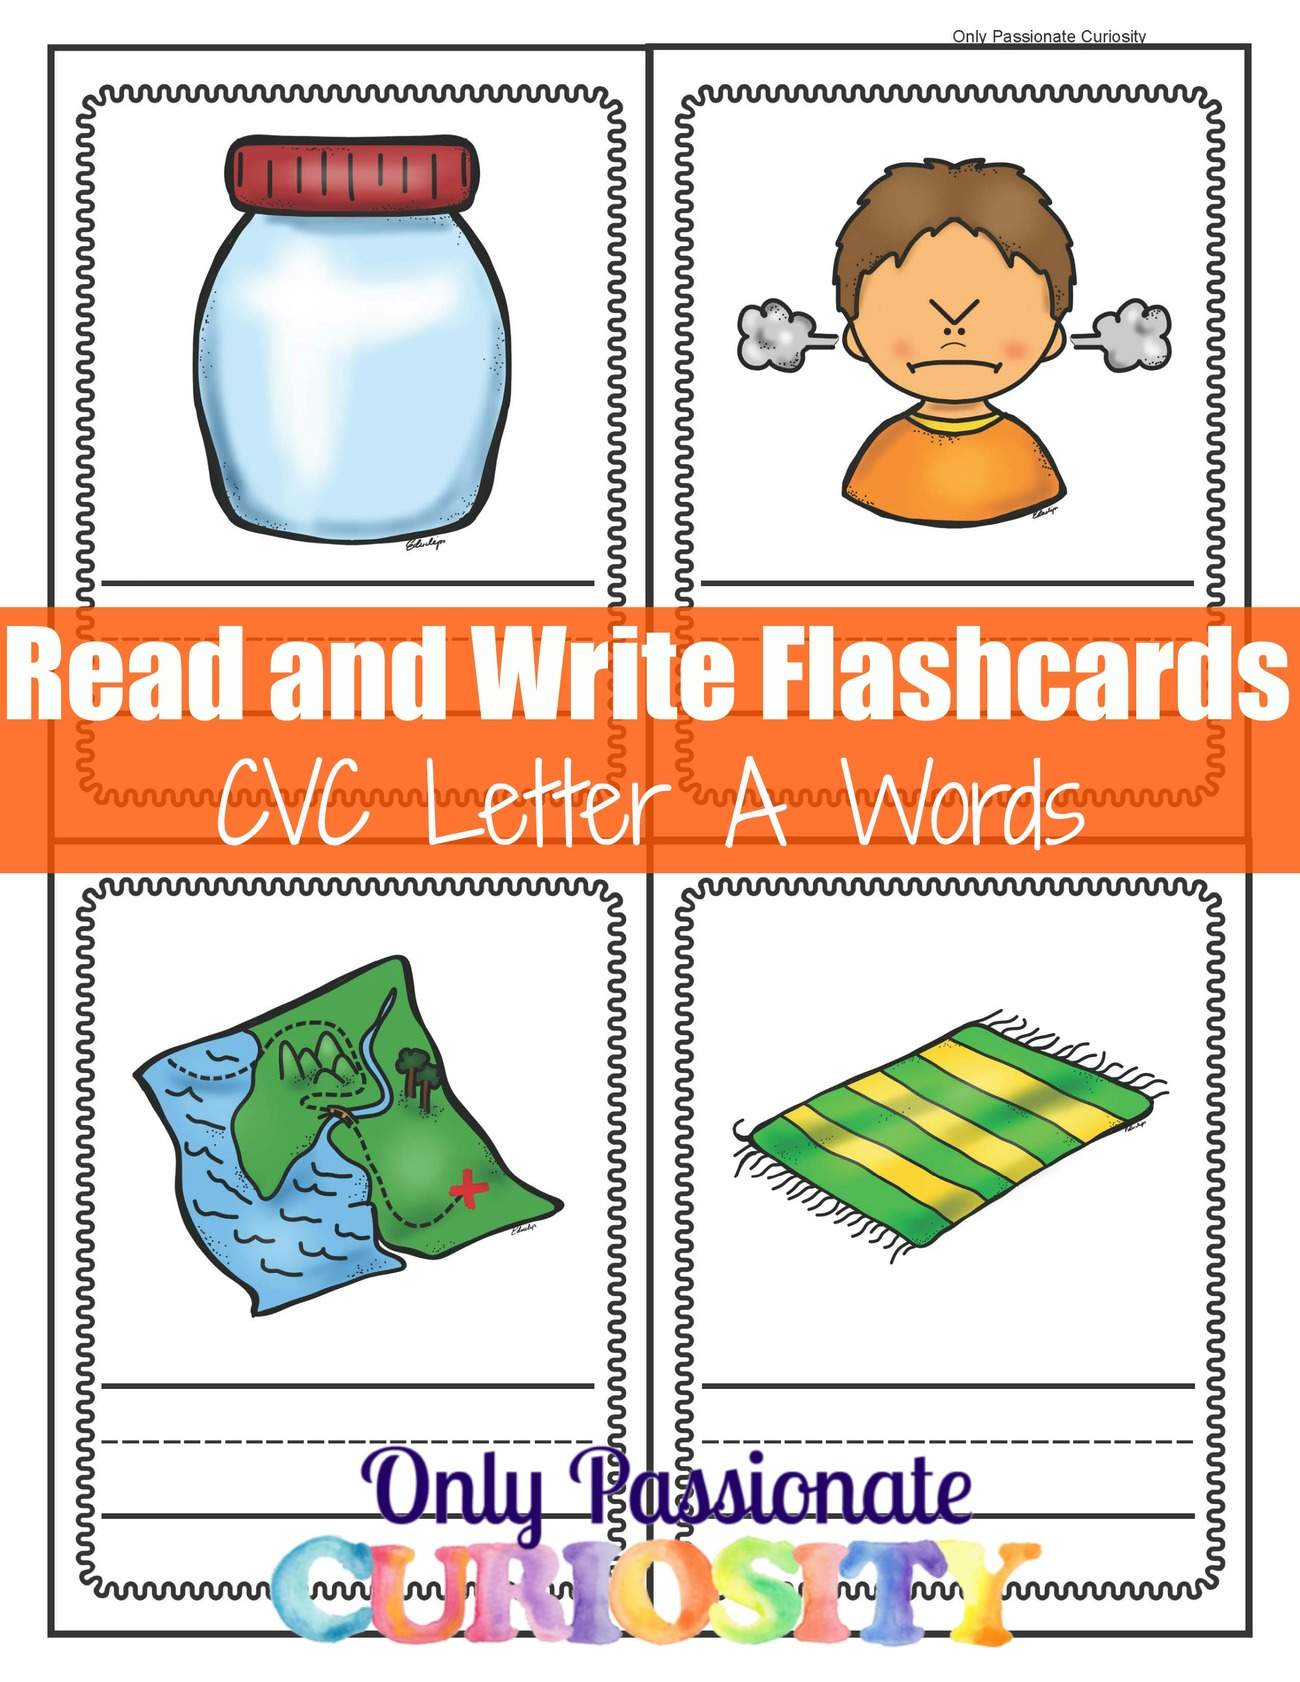 Write And Review Cvc Letter A Flashcards Only